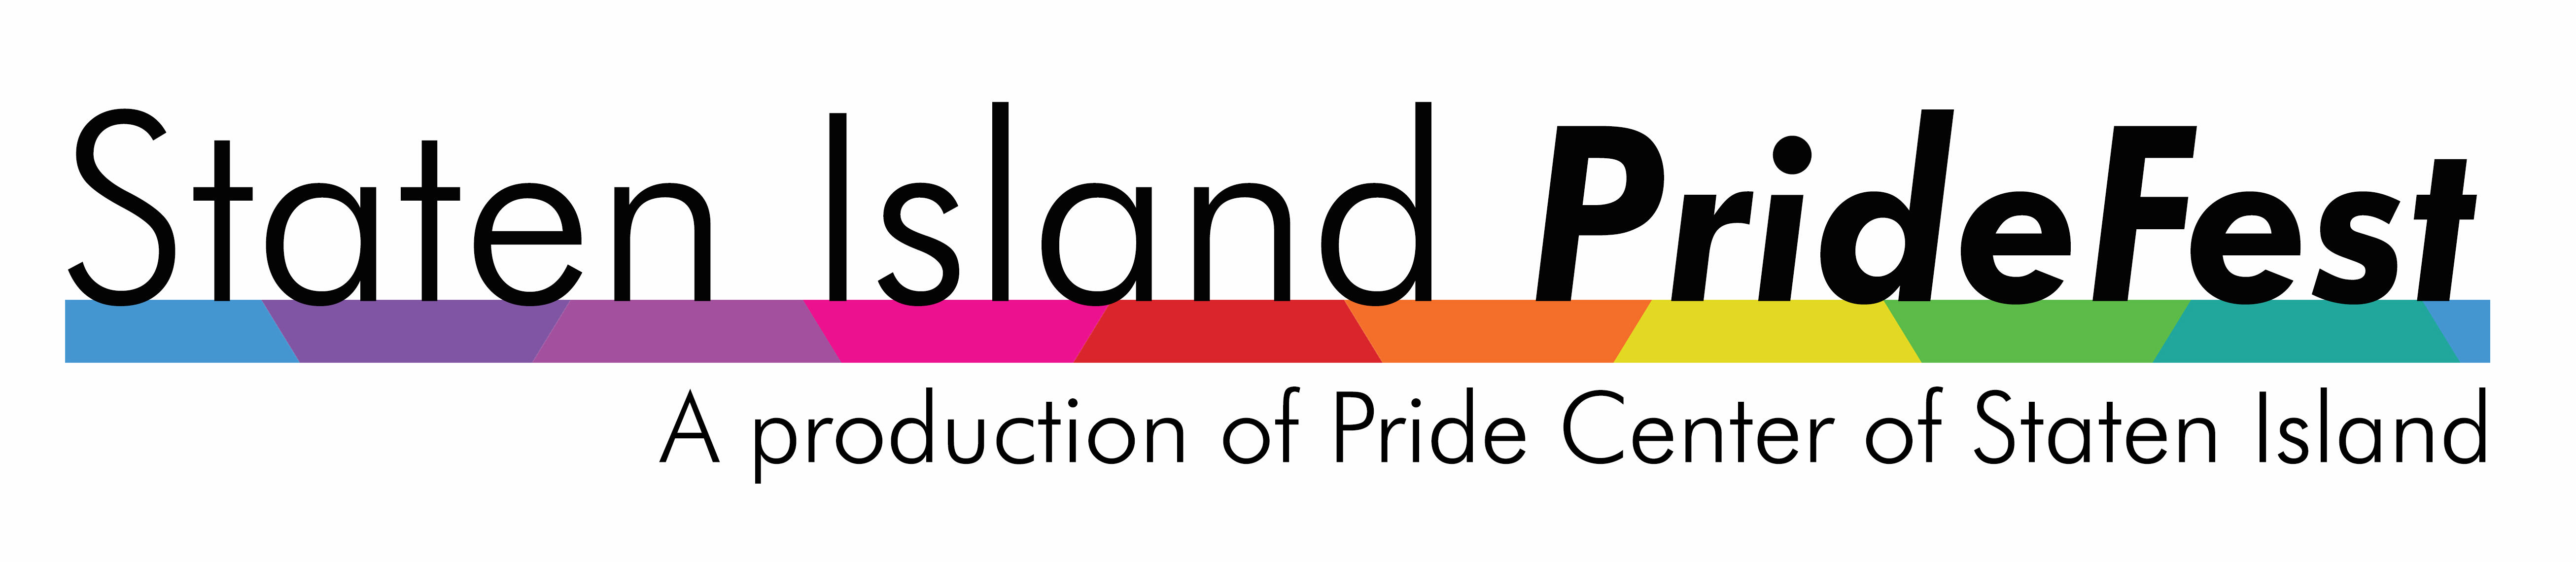 Pride Center of SI presents: Staten Island PrideFest Festival